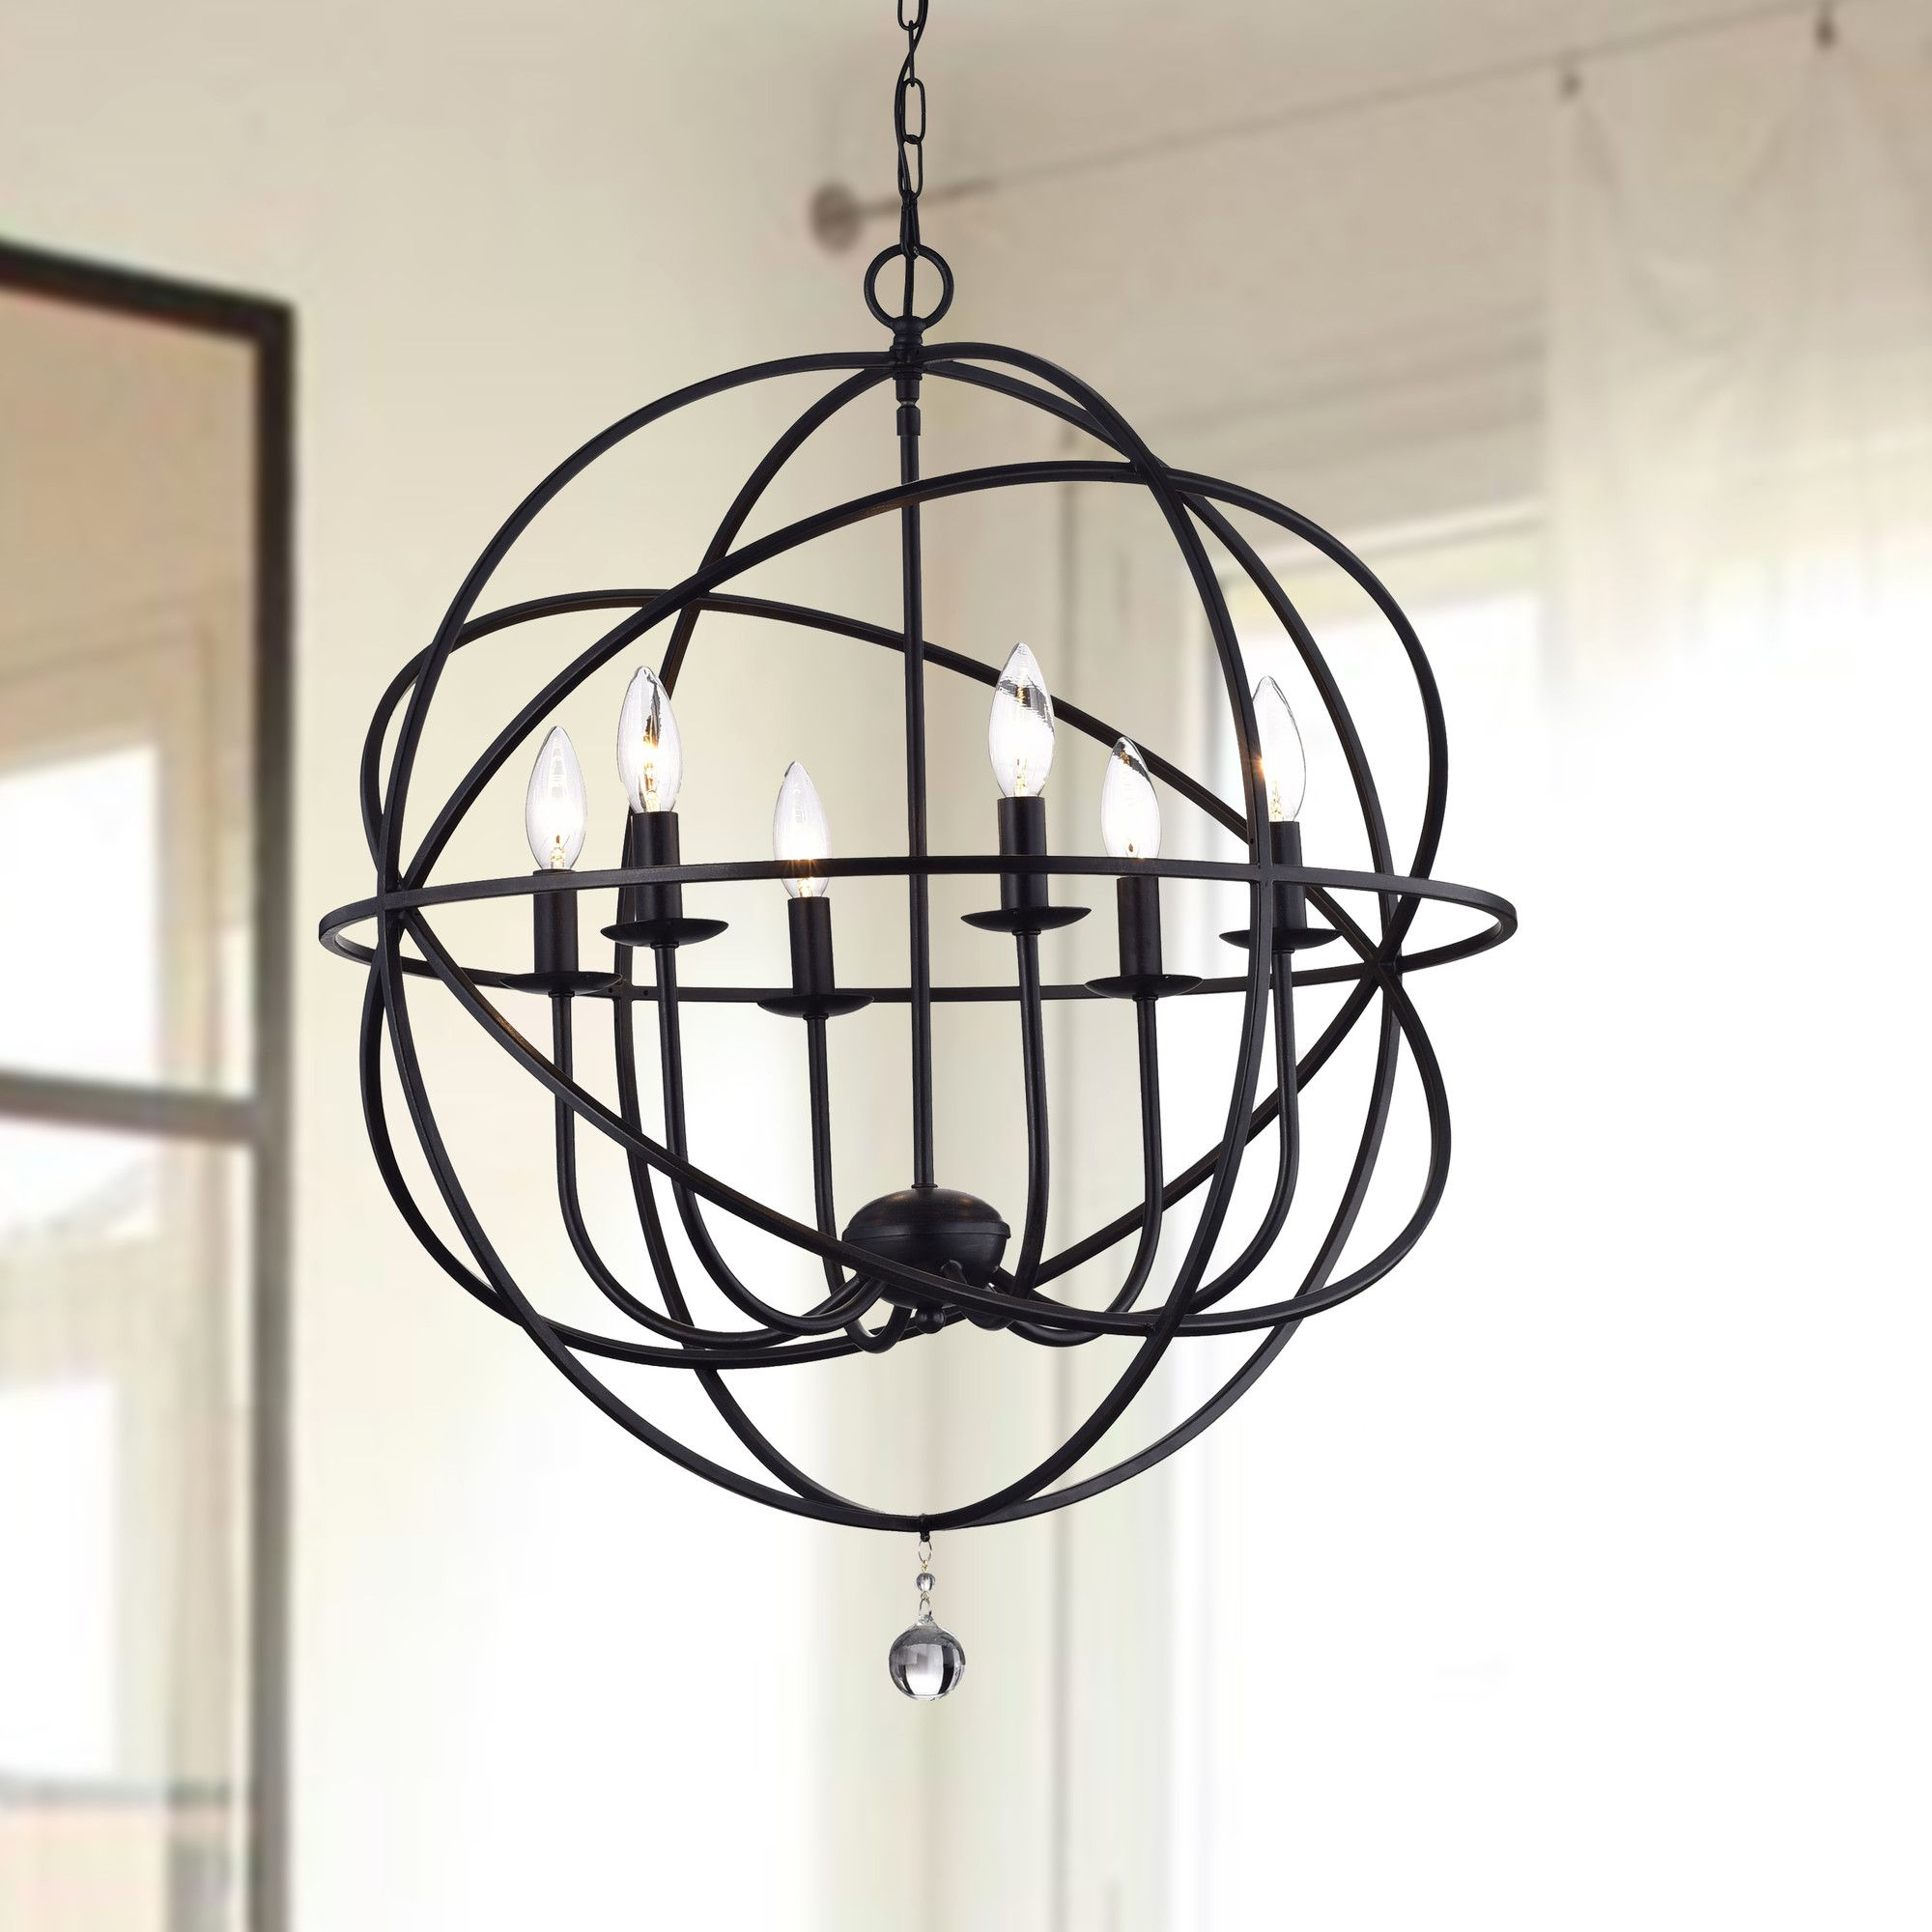 Gregoire 6 Light Globe Chandeliers With Regard To Current Lucia 6 Light Globe Pendant (View 11 of 20)